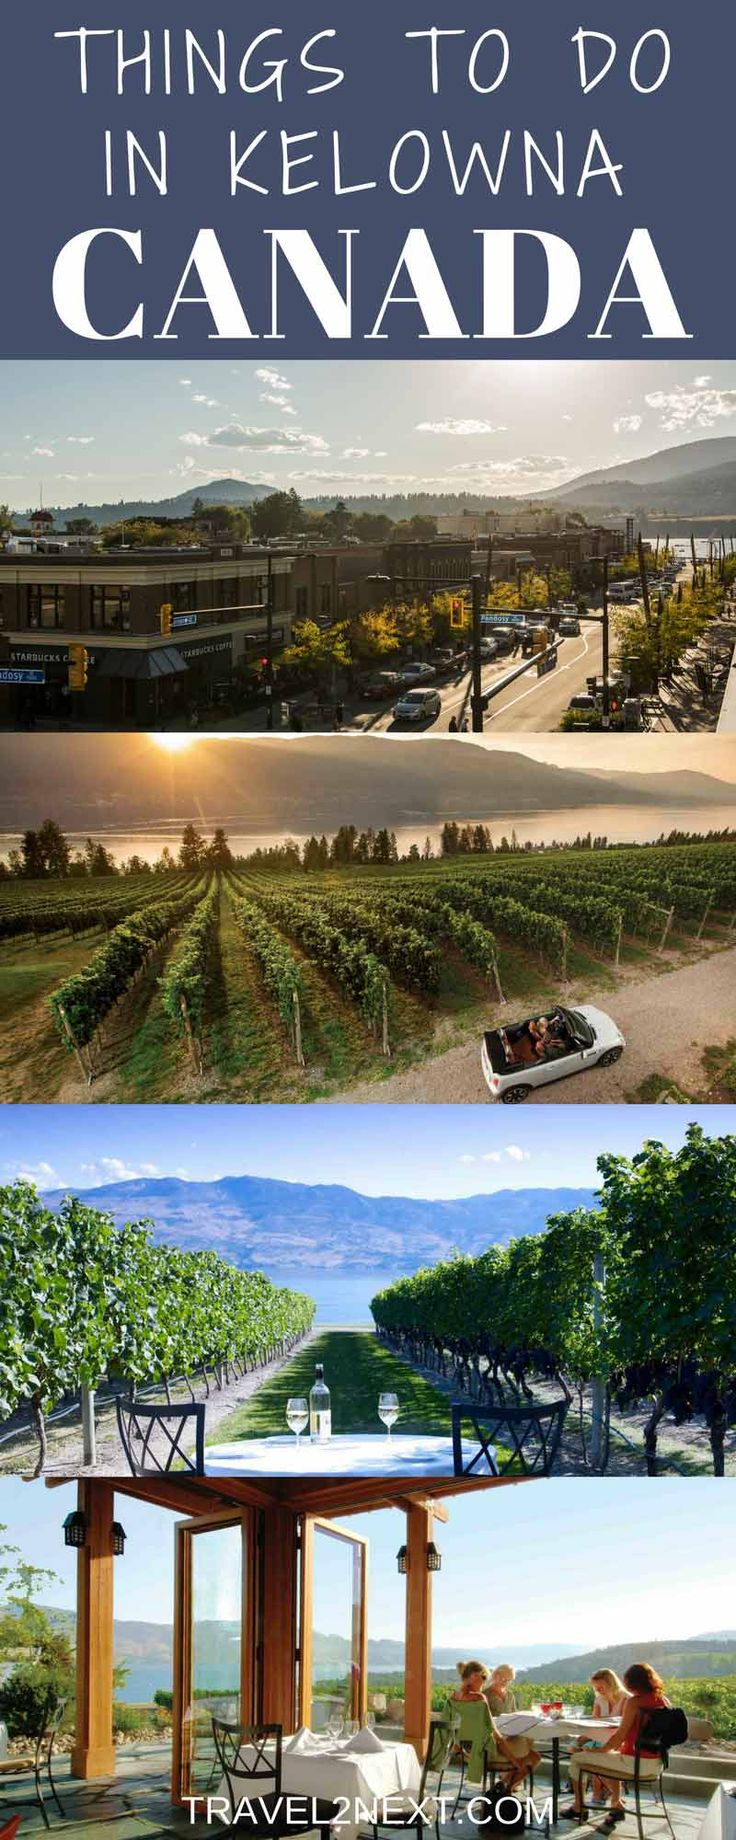 379 best Things to do ~ Okanagan Valley images on Pinterest ...